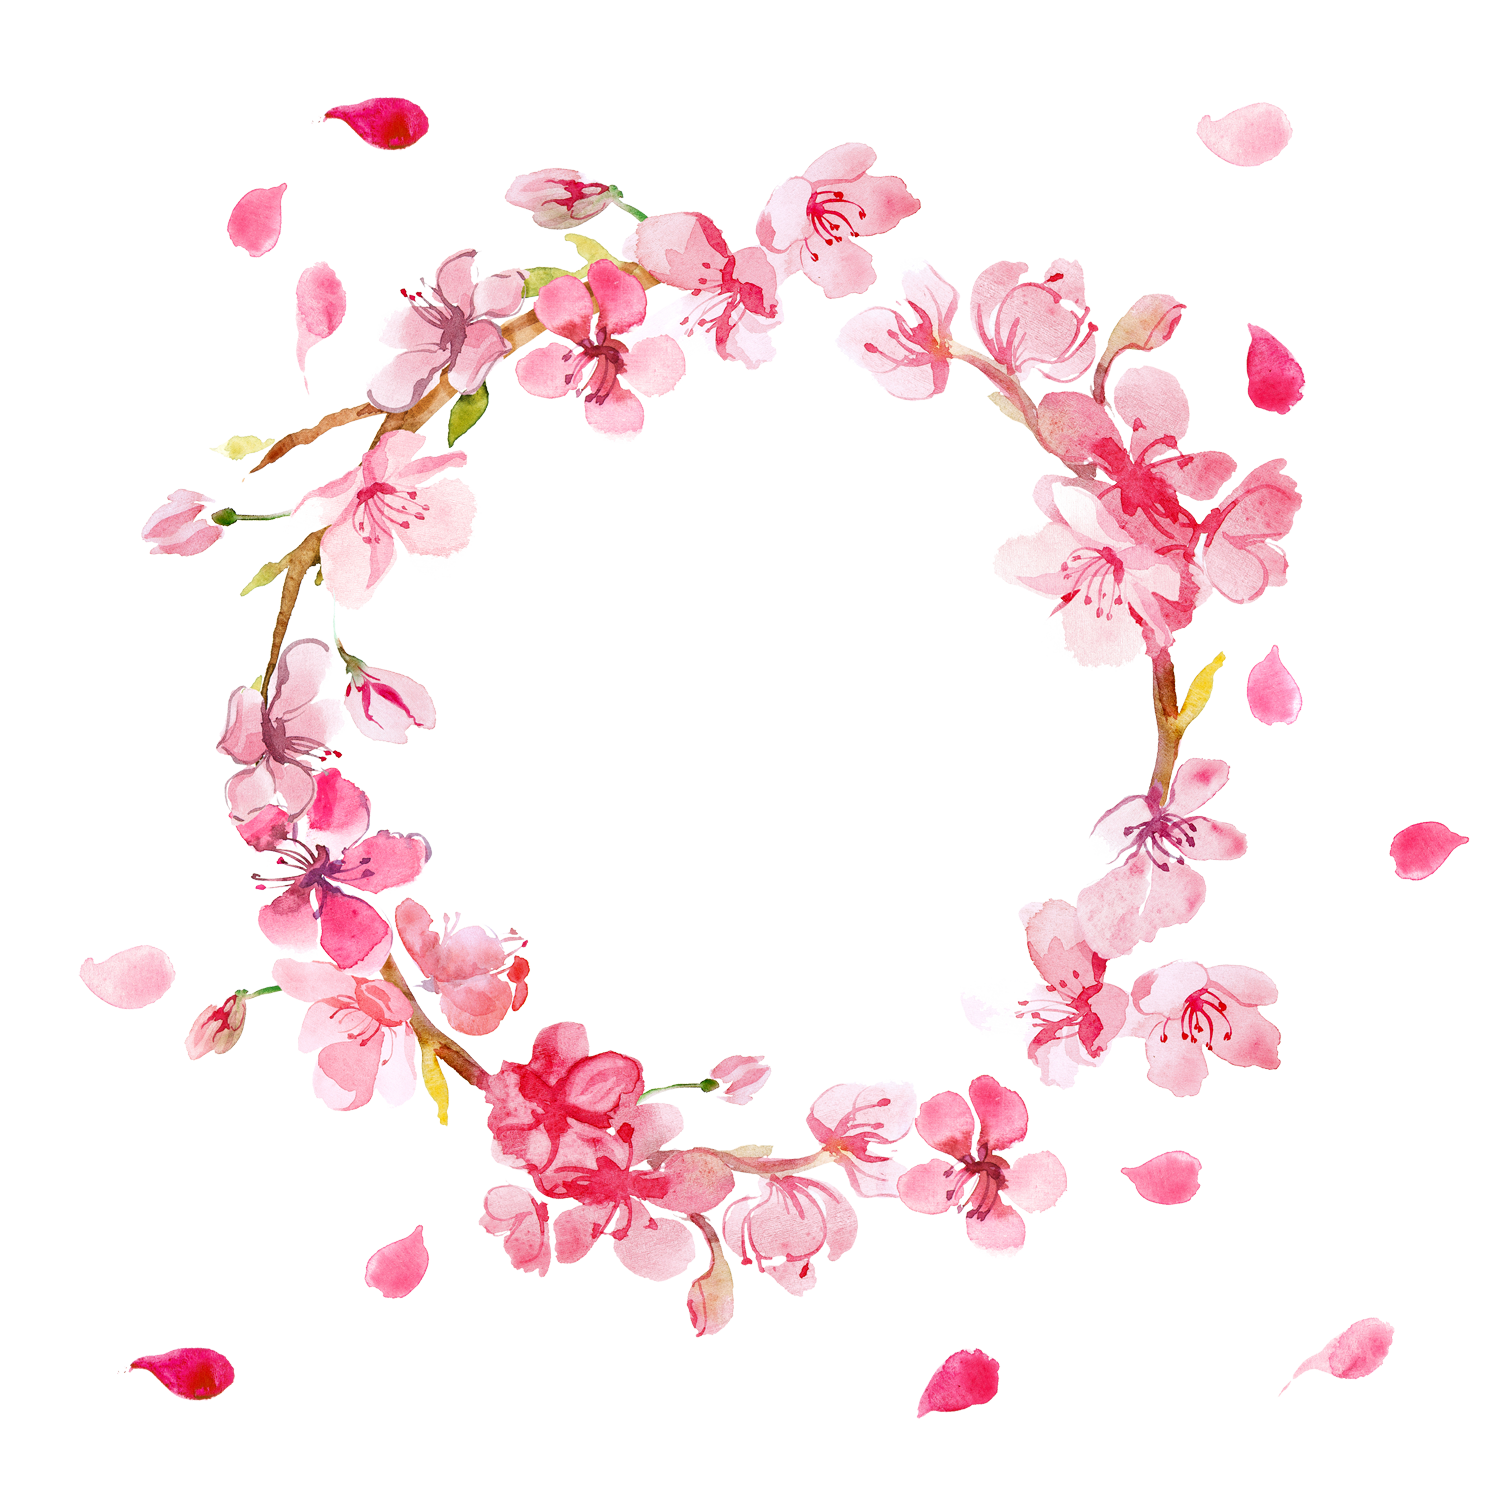 Free Pink Flowers Wreath PNG - Flower Wreath PNG HD